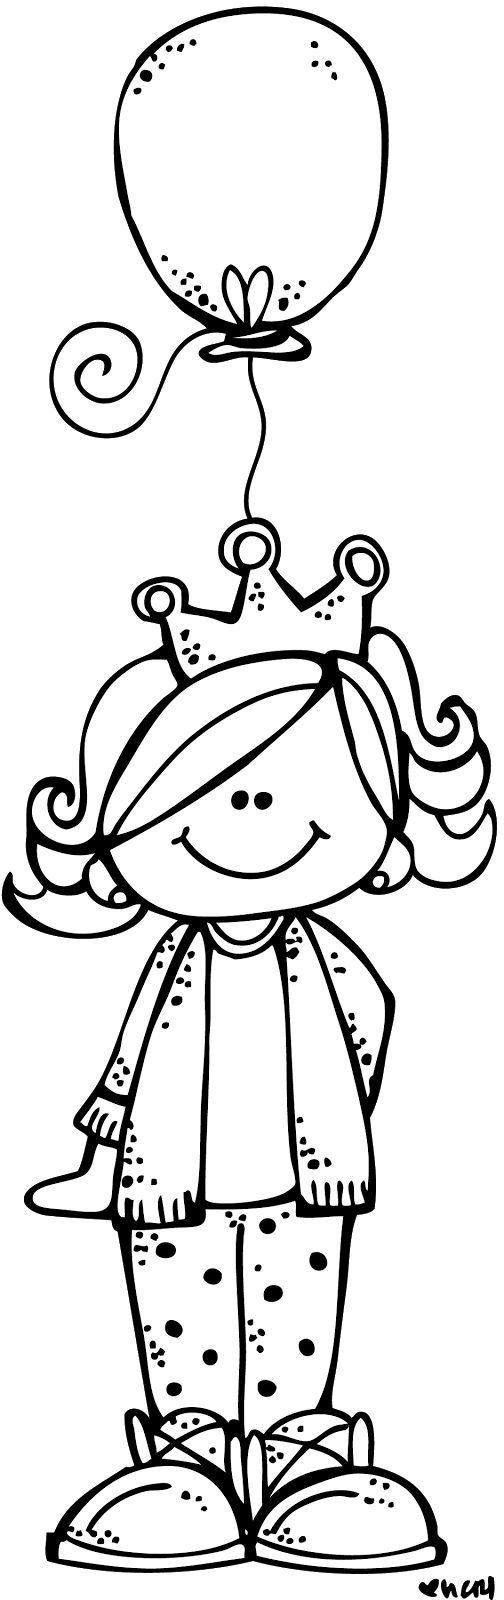 birthday girl coloring pages free printable happy birthday coloring pages for kids coloring birthday girl pages